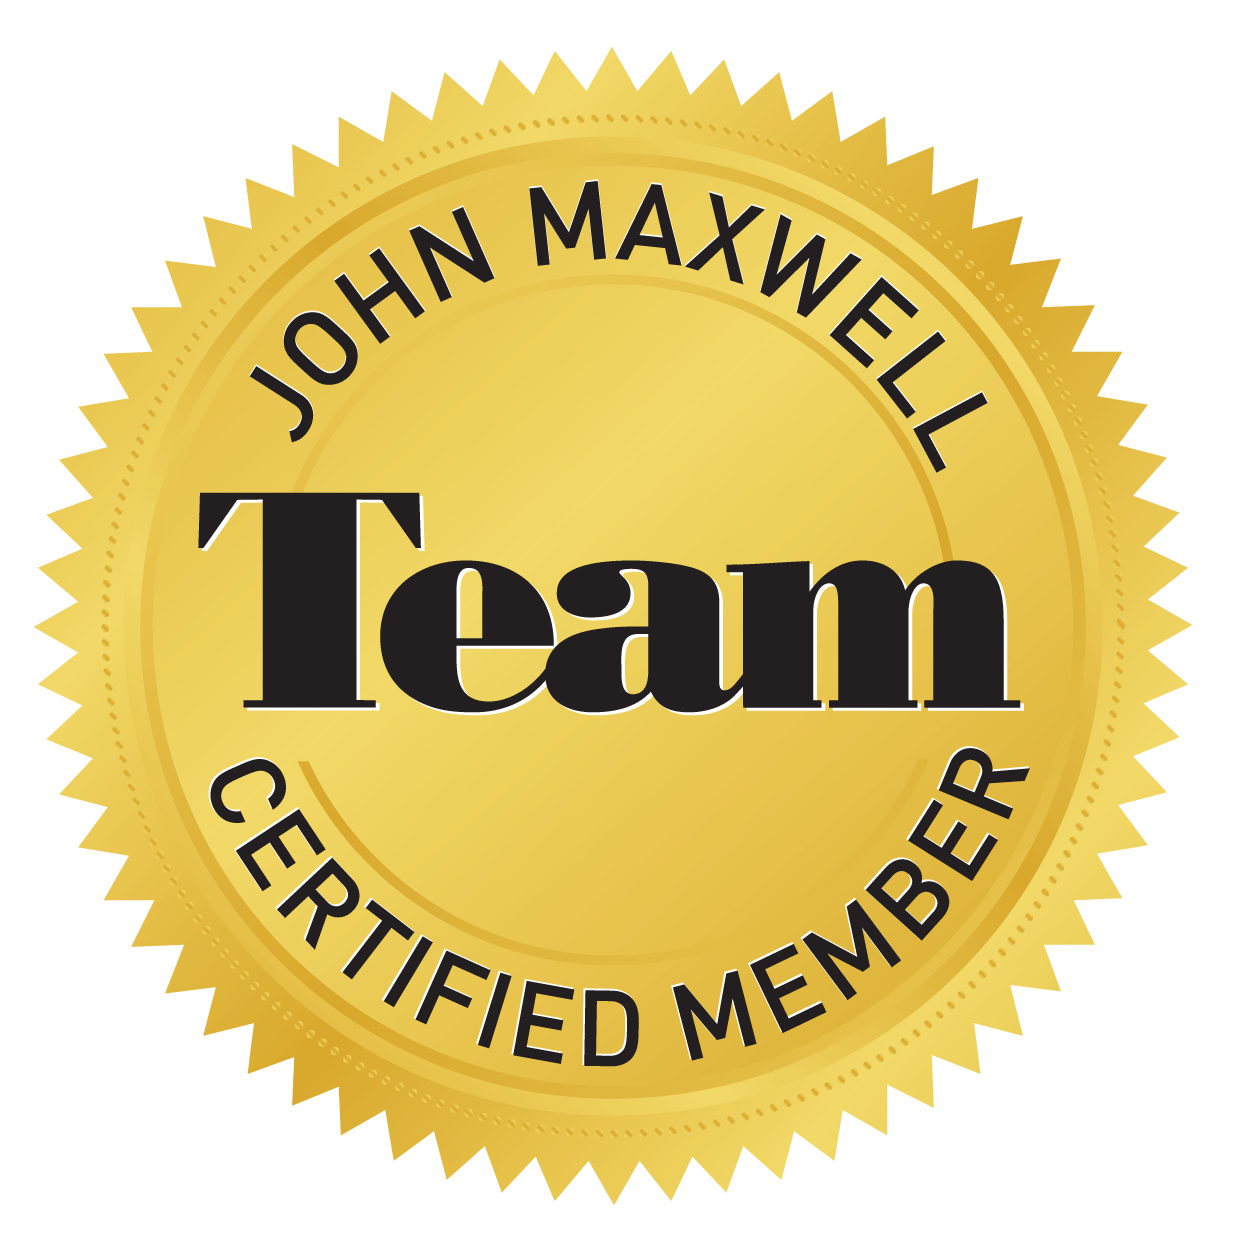 Daniel Gomez is a John Maxwell Team Certified Speaker